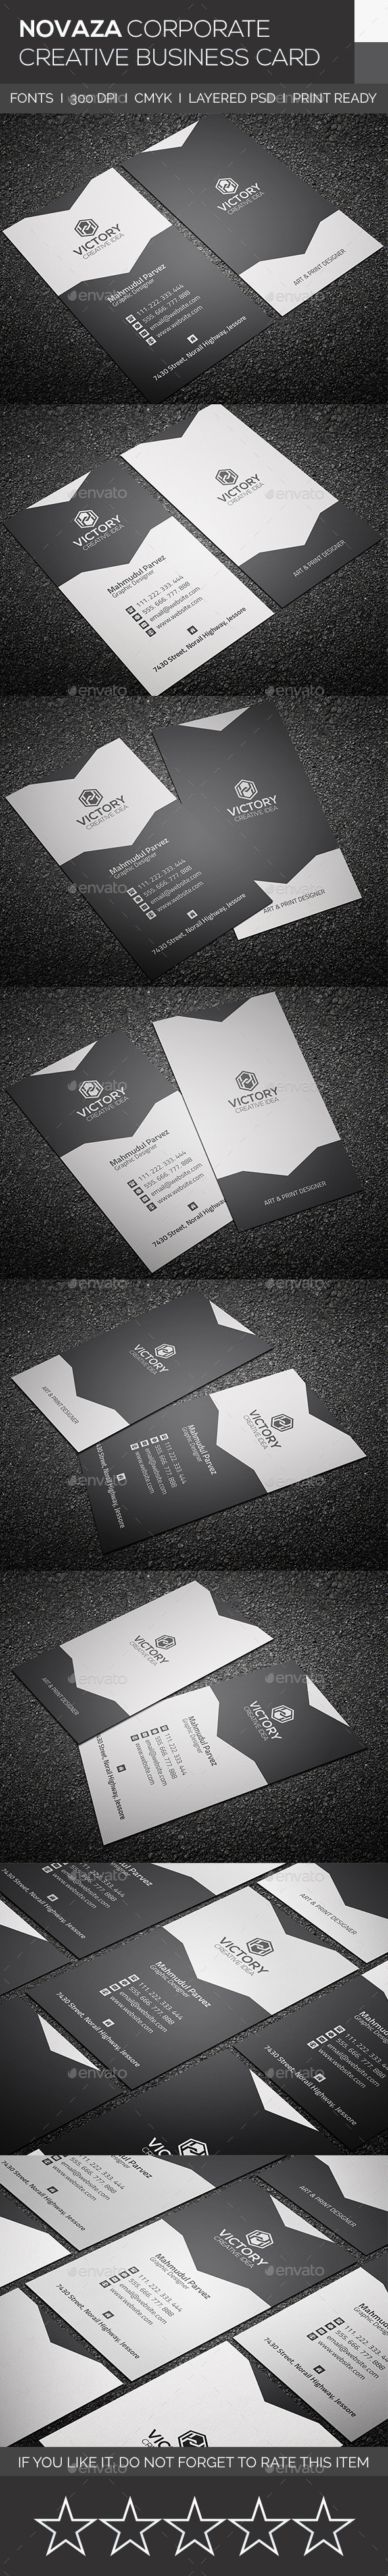 Novaza Corporate & Creative Business Card - Corporate Business Cards